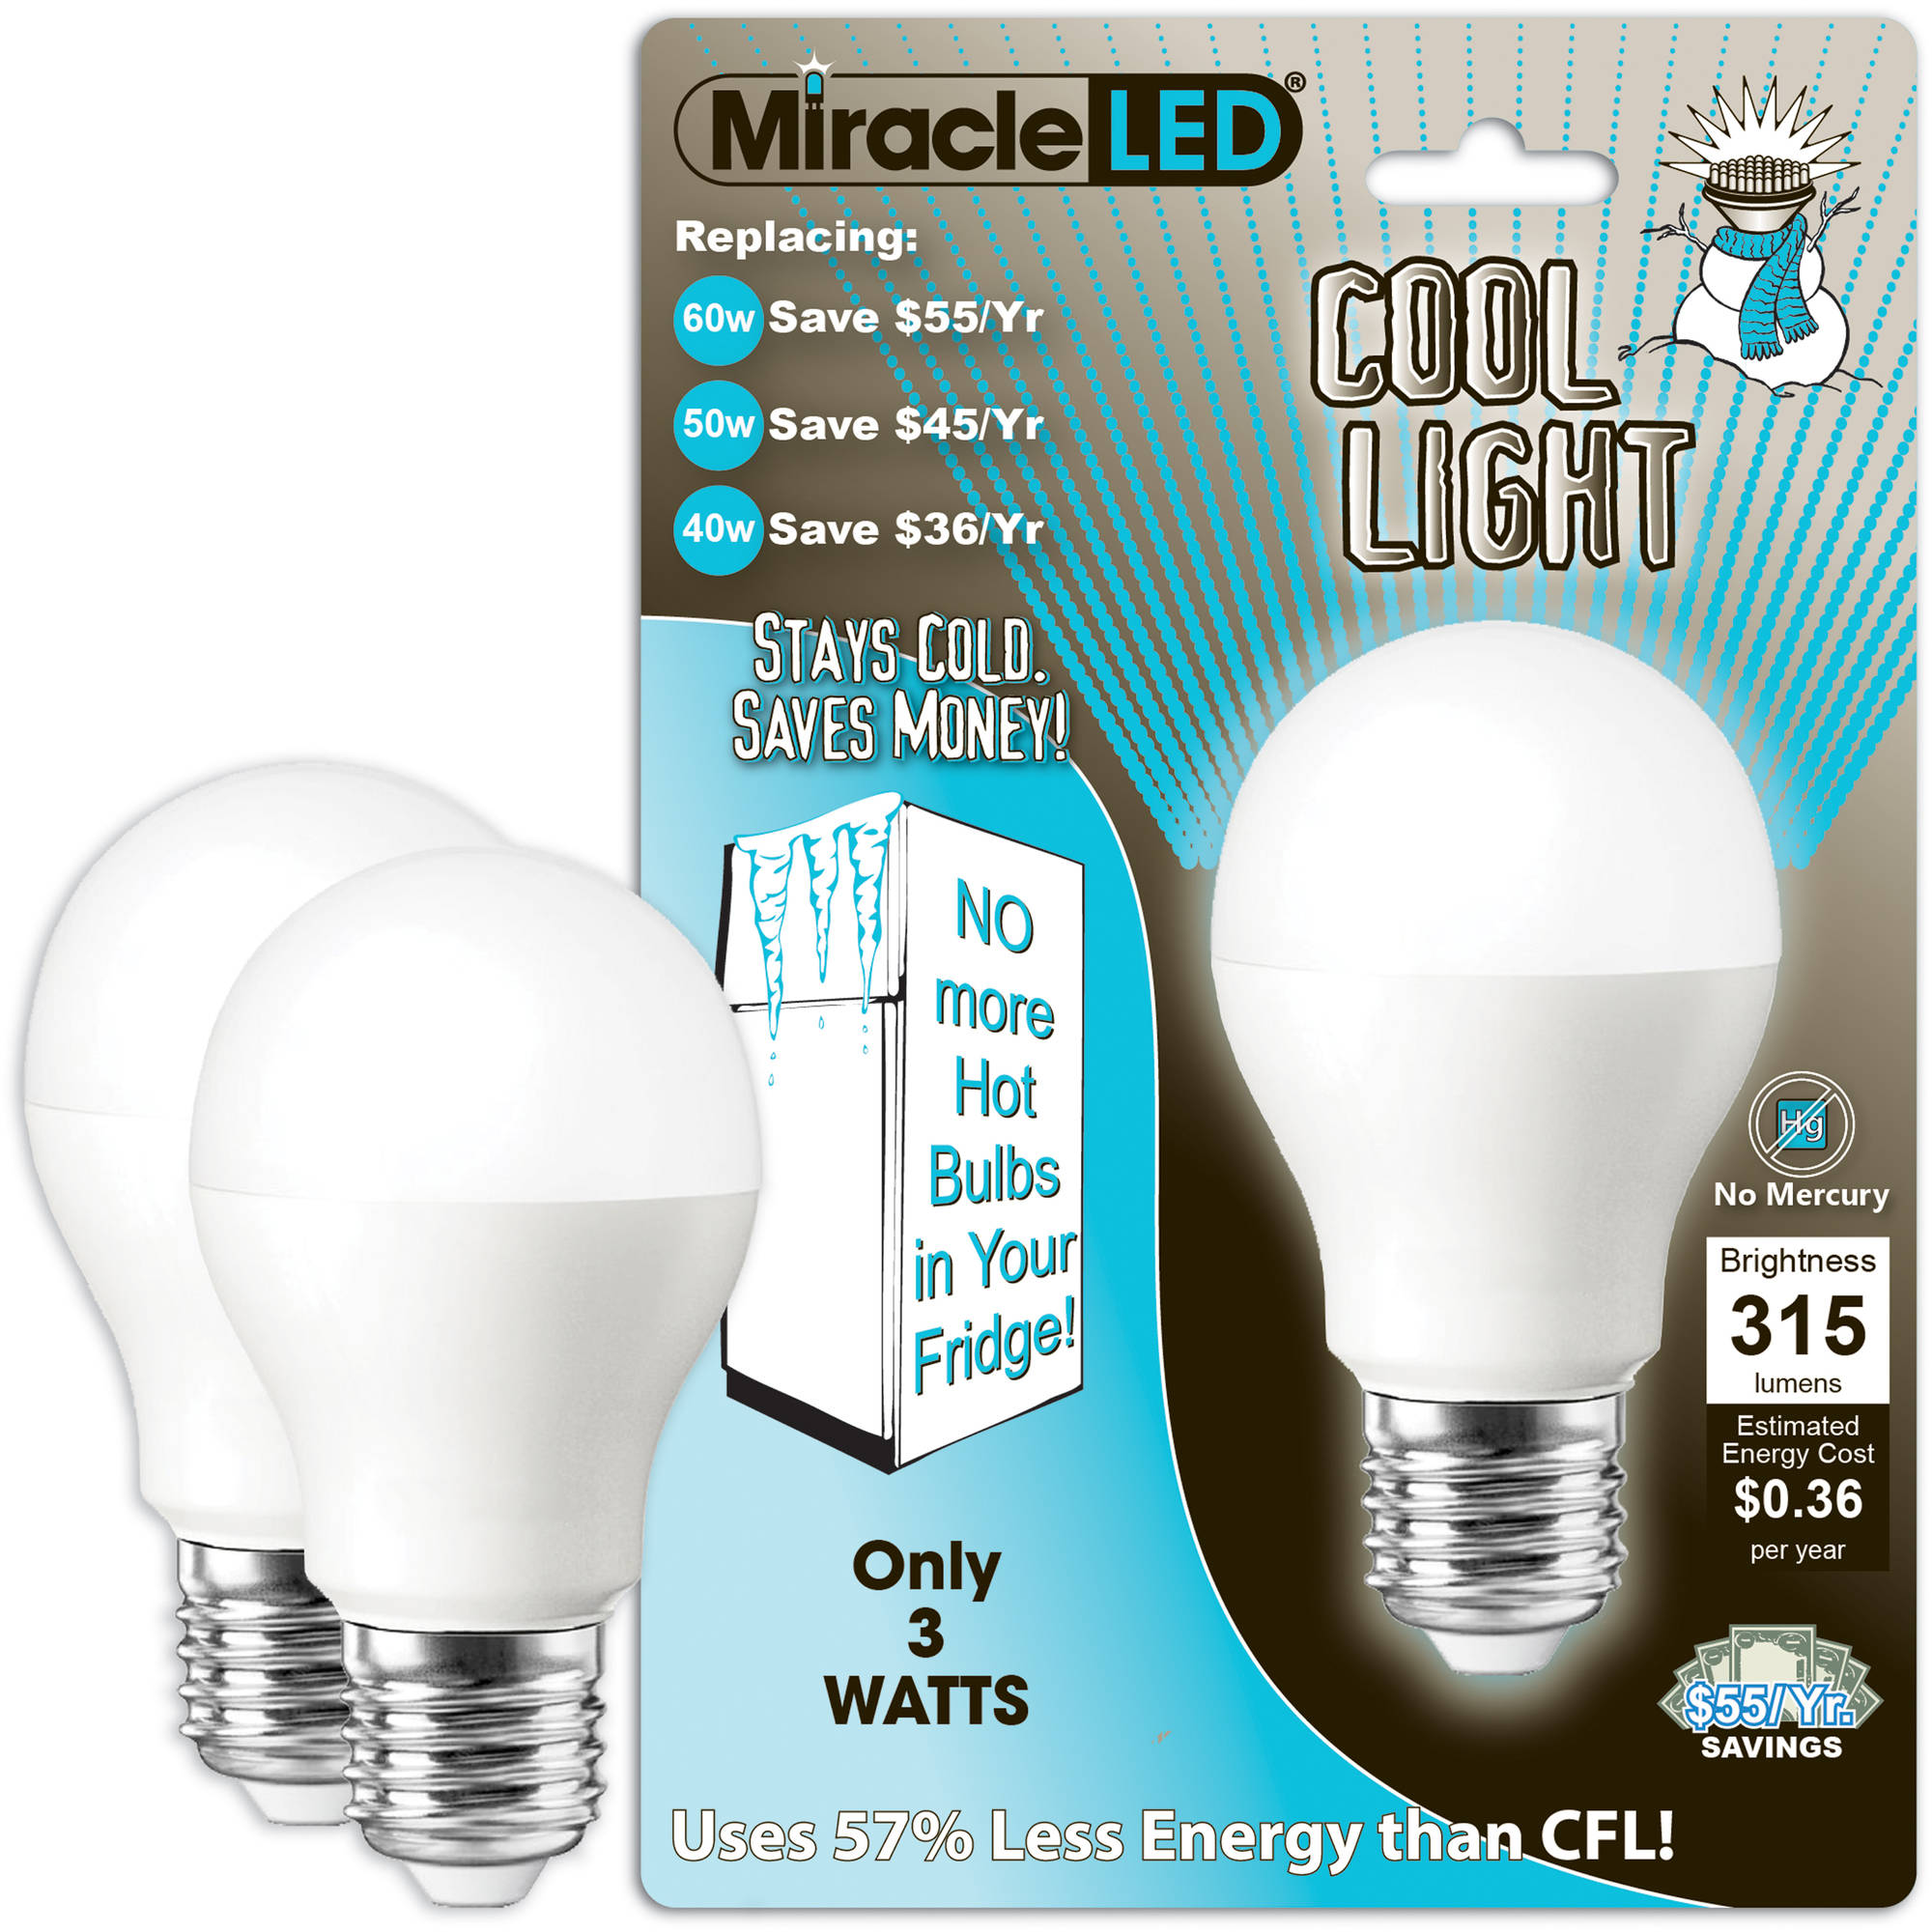 "Miracle LED ""Cool Light"" Refrigerator and Freezer LED Light Bulb, 3W (Replaces 40W), Cool White, 2-count"